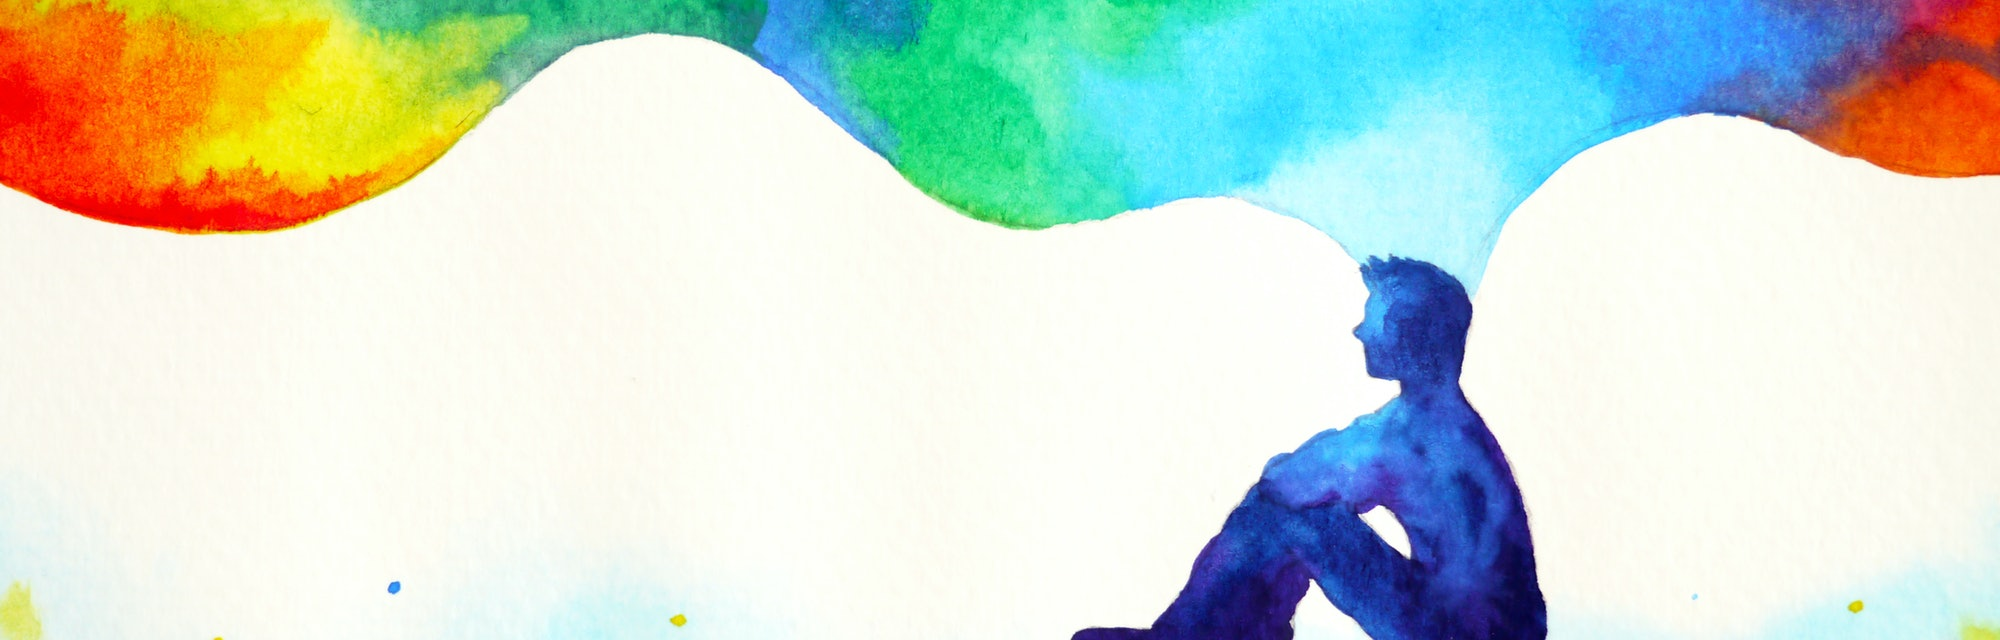 human and spirit powerful energy connect to the universe power abstract art watercolor painting illu...